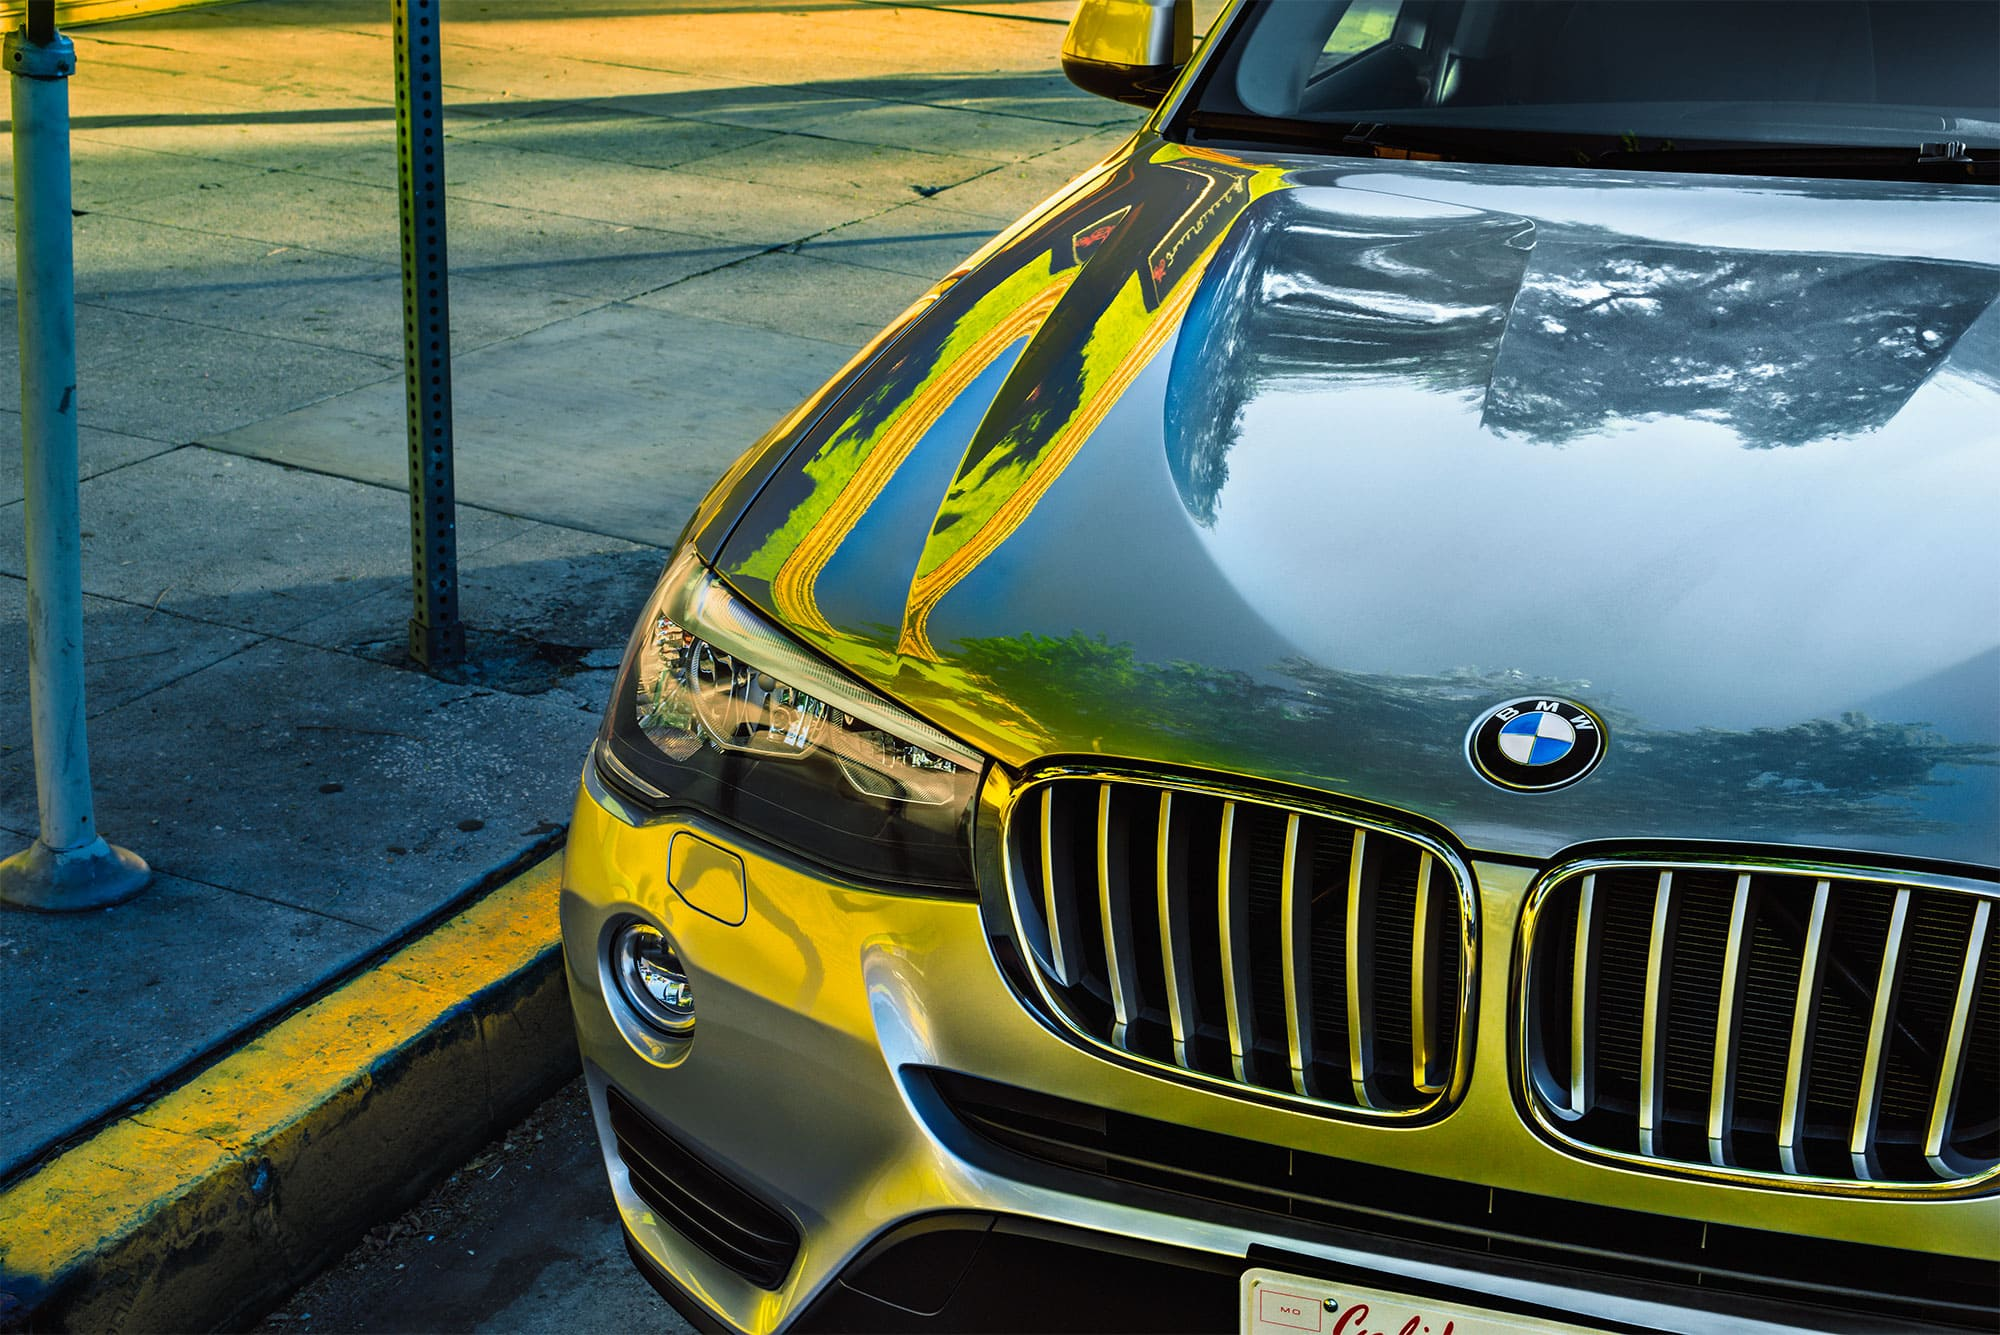 johannes kuehn photography and cgi berlin Los Angeles with BMW